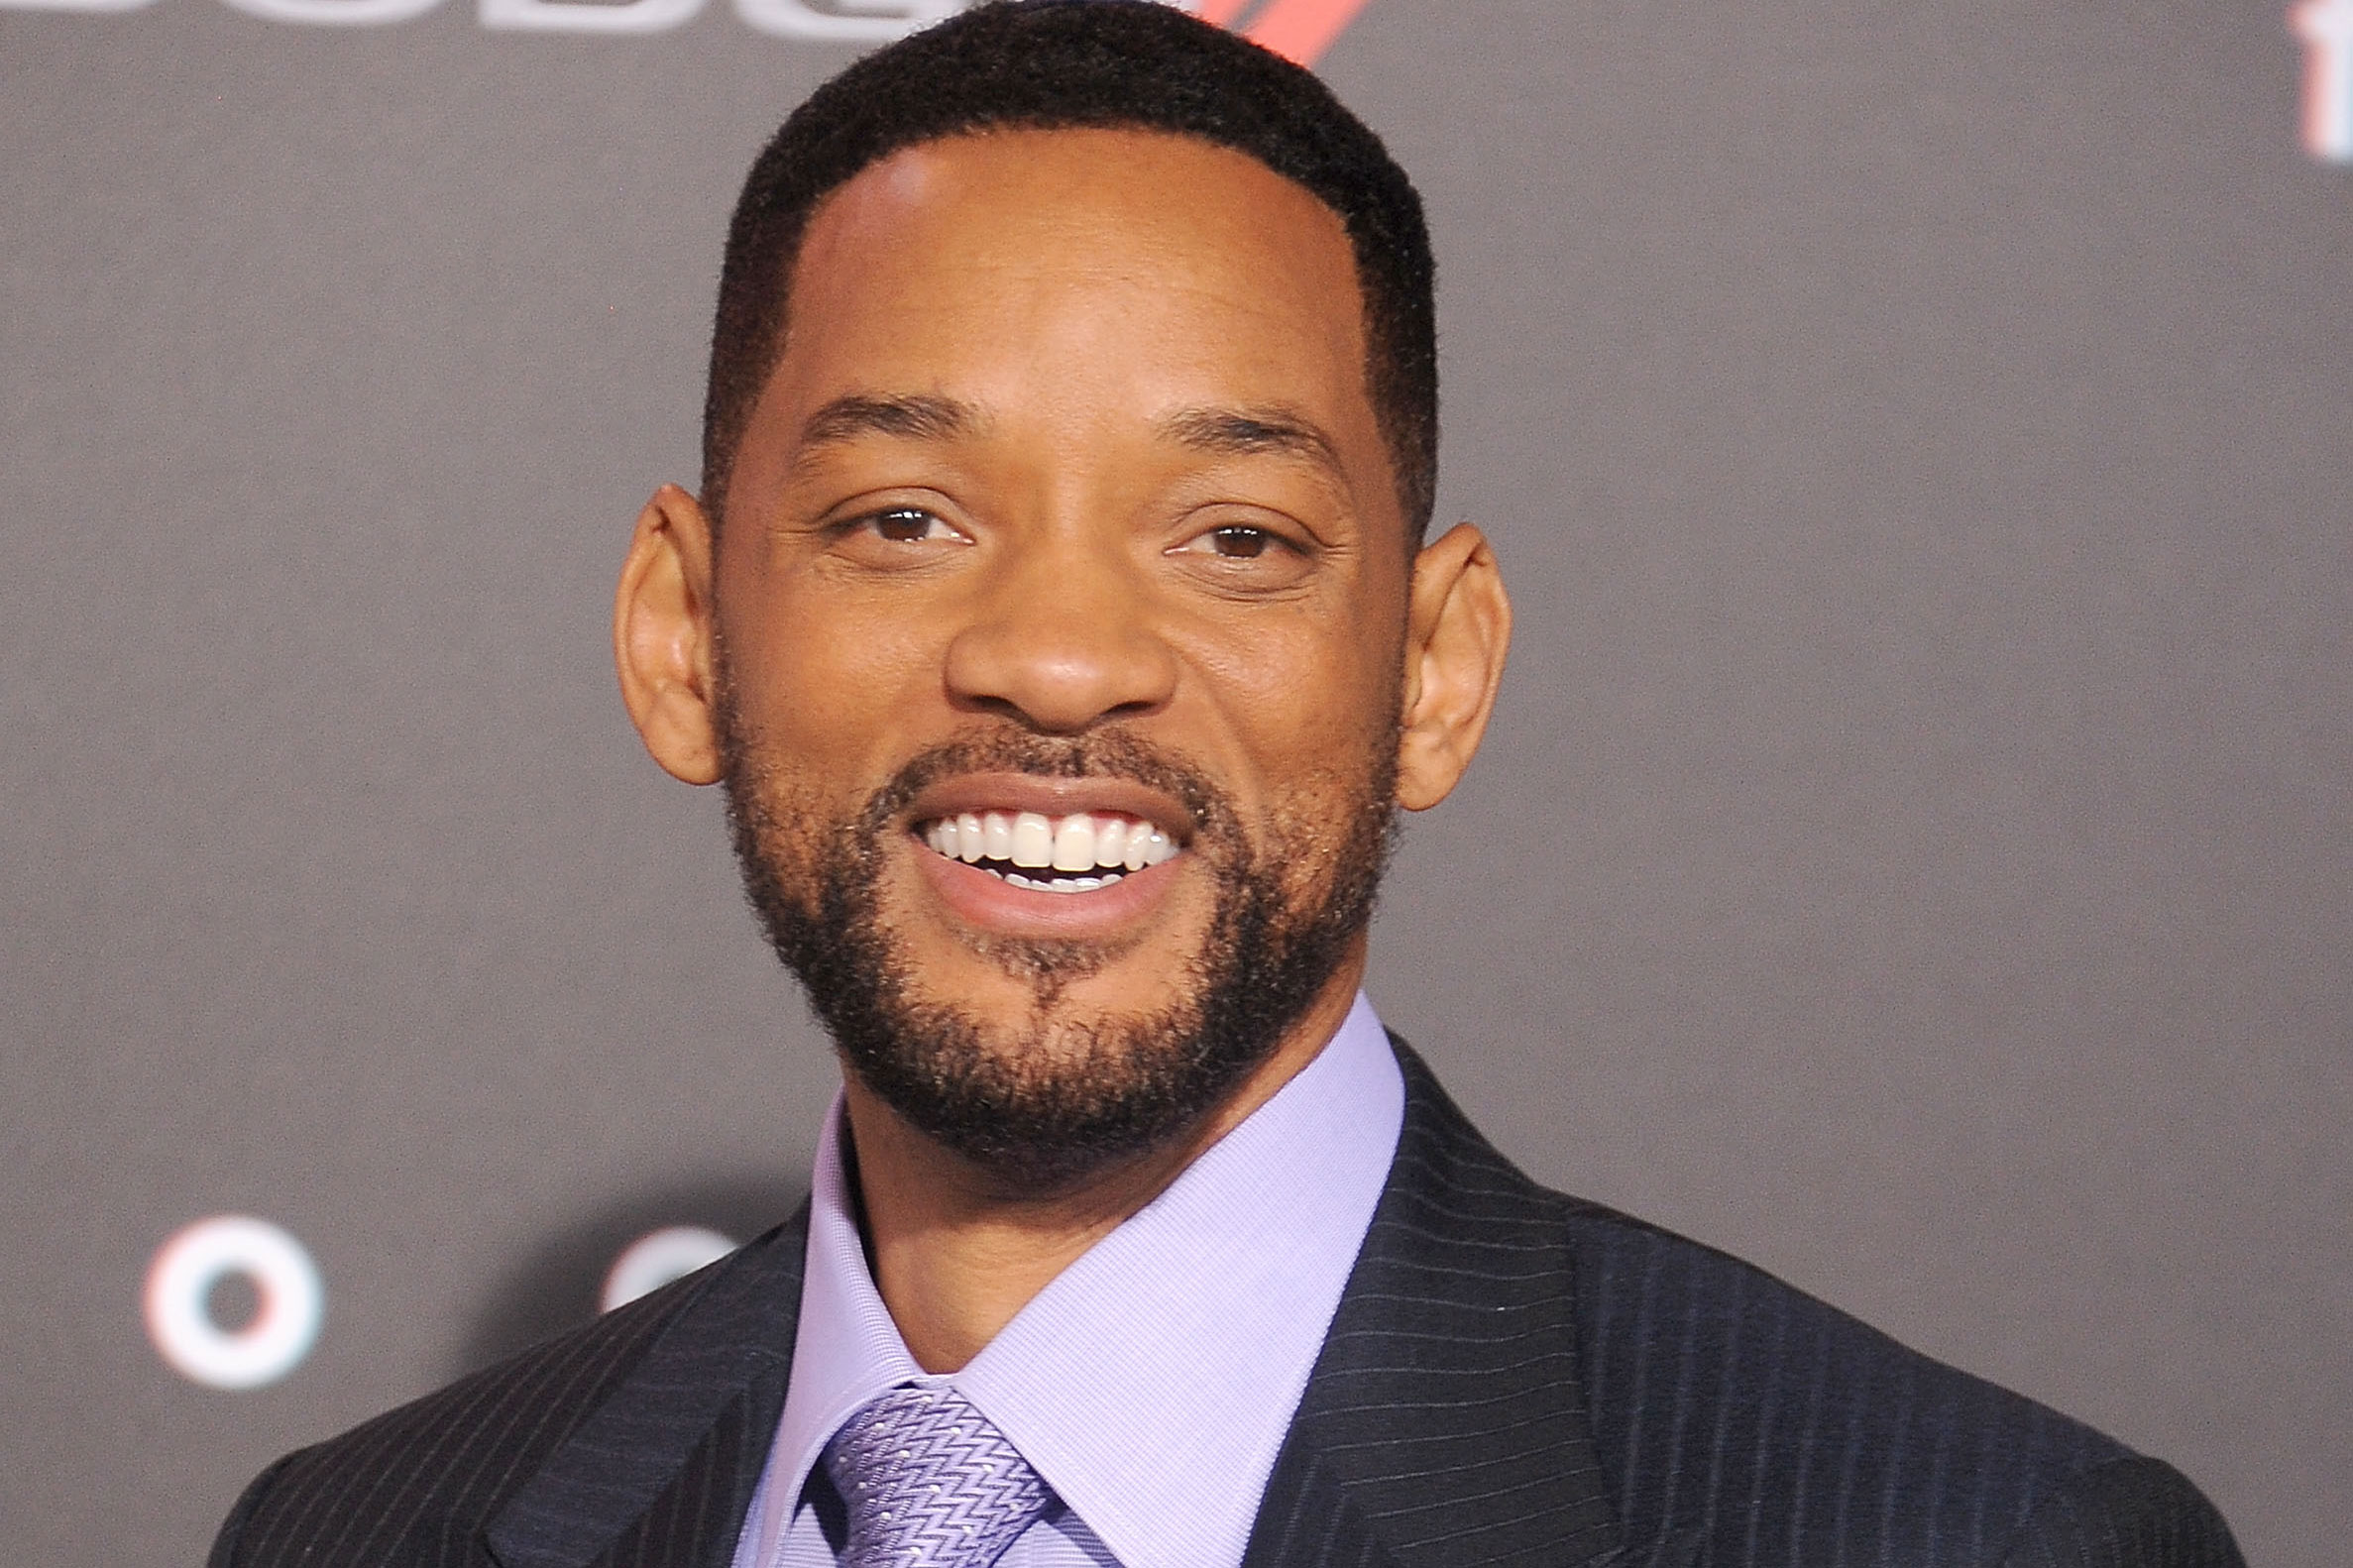 Happy birthday will smith entertainment news celebrity gossip getty images sciox Image collections